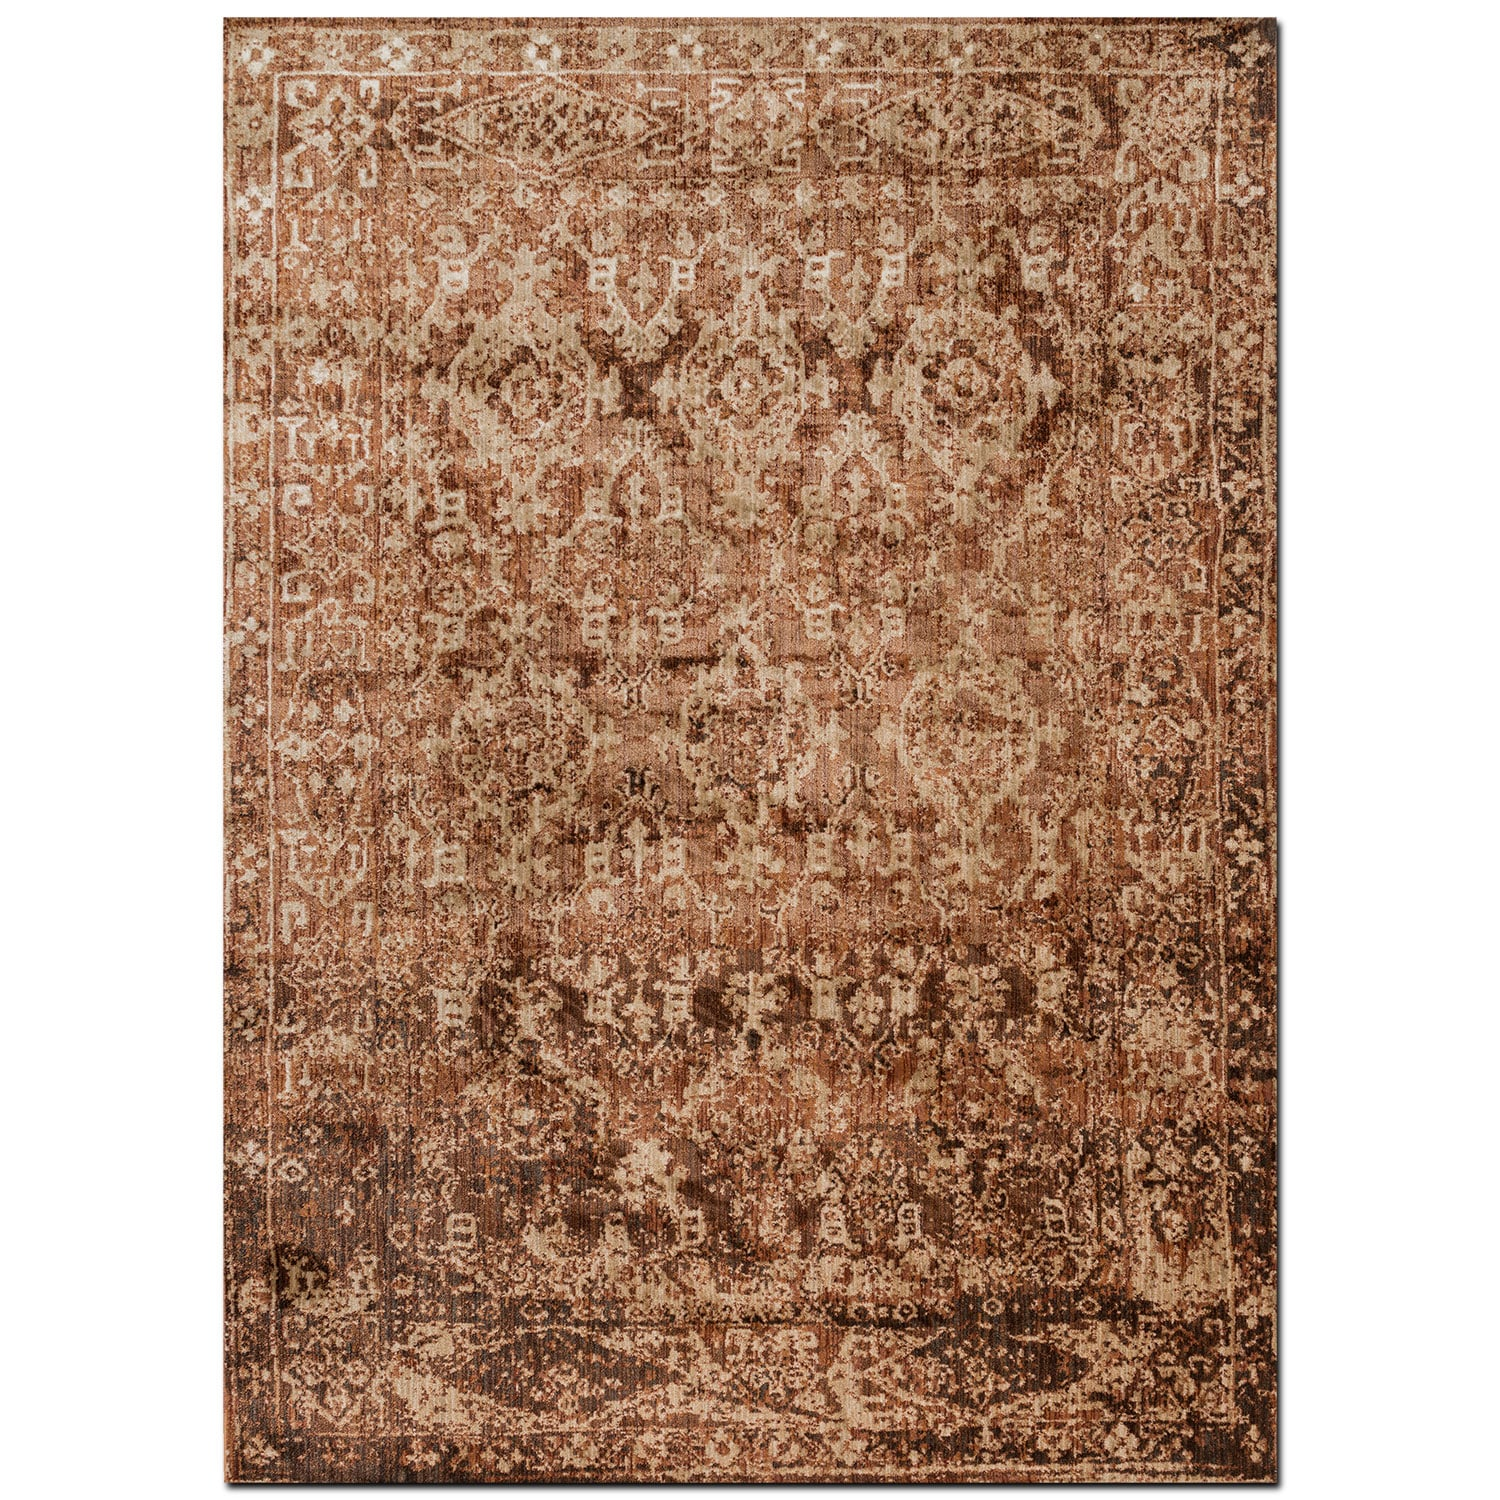 Rugs - Kivi 7' x 9' Rug - Sand and Copper